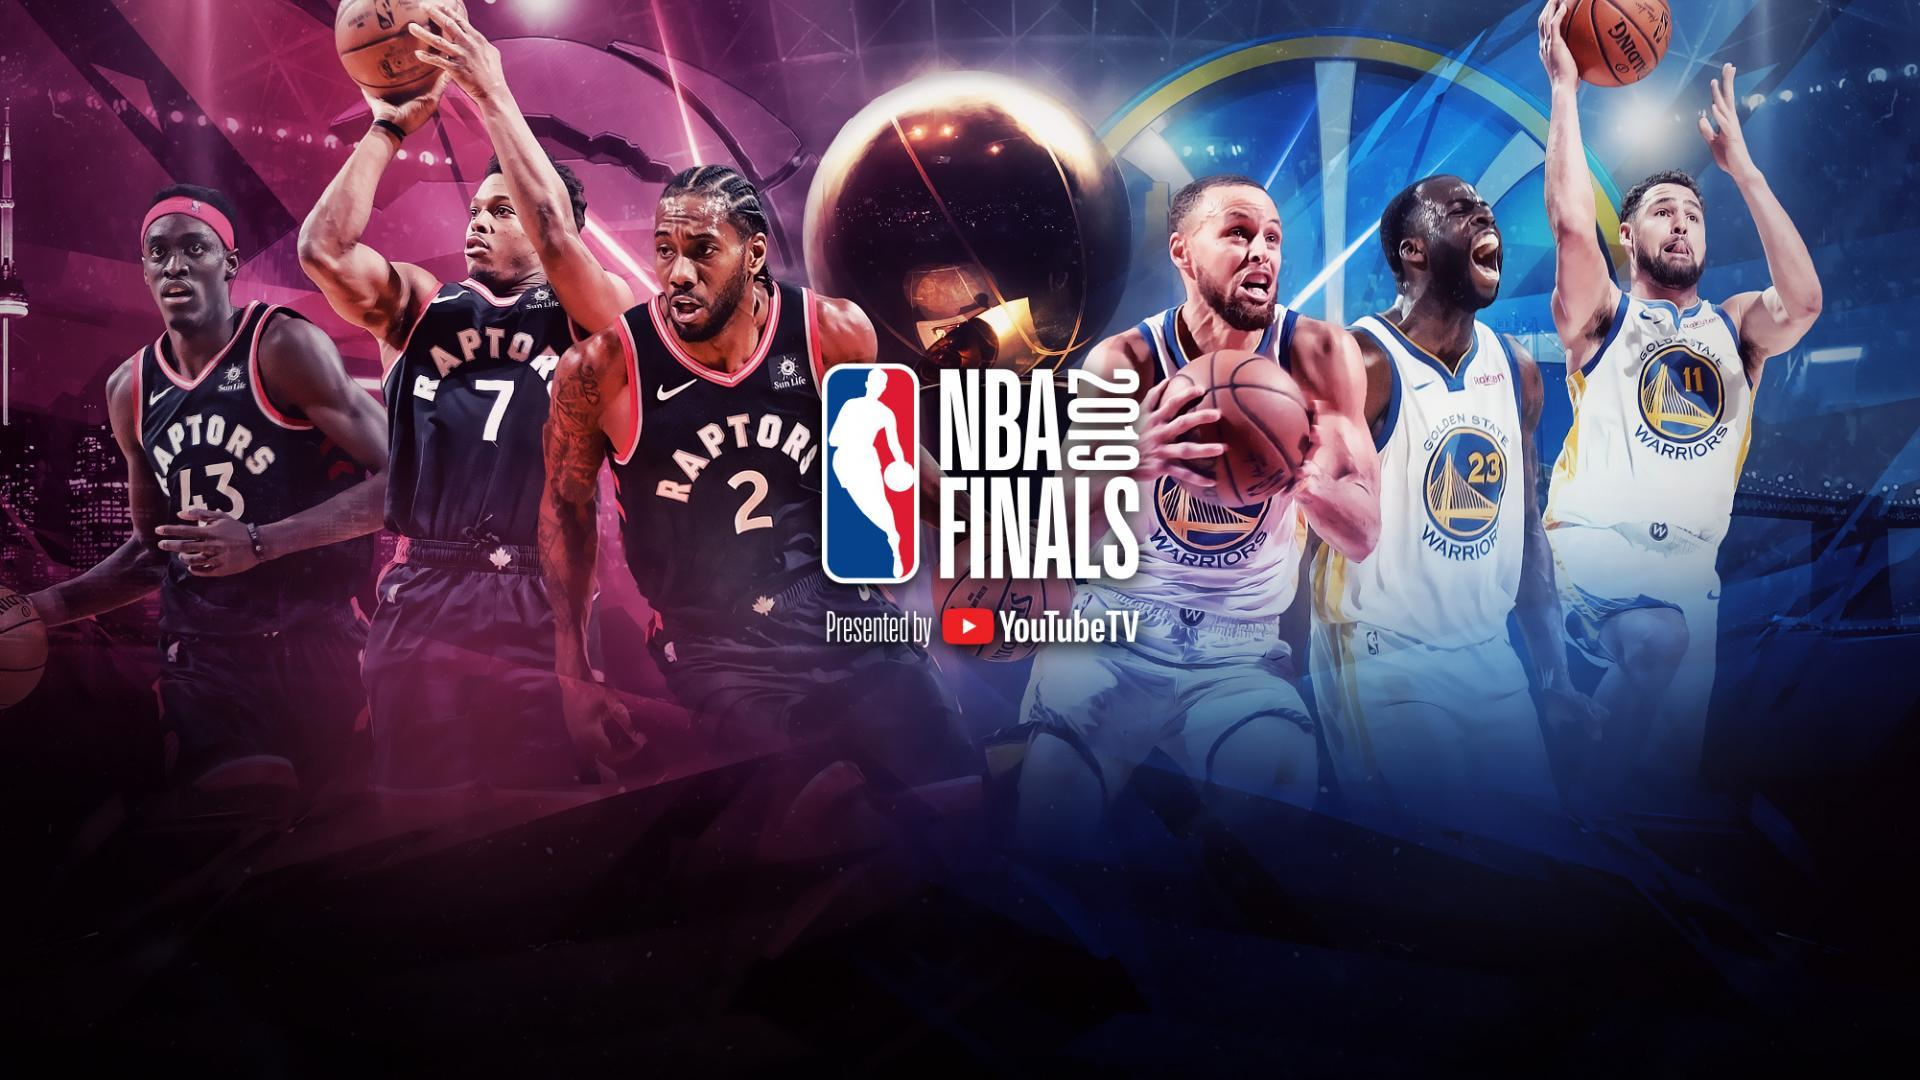 Raptors Warriors Set For Historic Matchup In 2019 Nba Finals Presented By Youtube Tv Nba Com